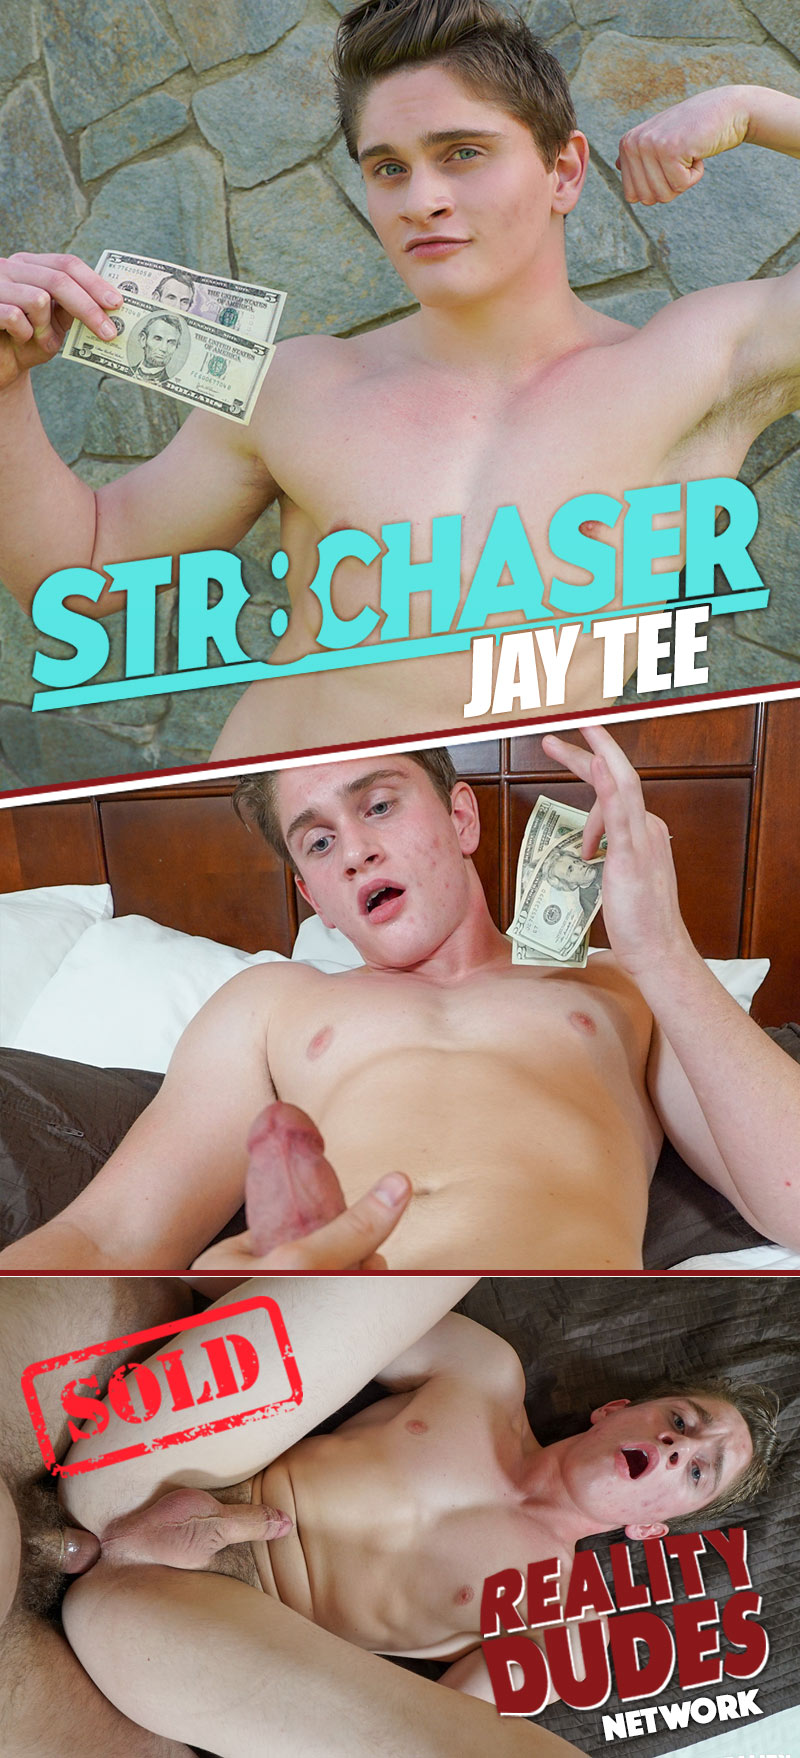 Jay Tee (He Offered Up His Bubble Butt After I Flashed My Wad Of Cash) at Str8 Chaser